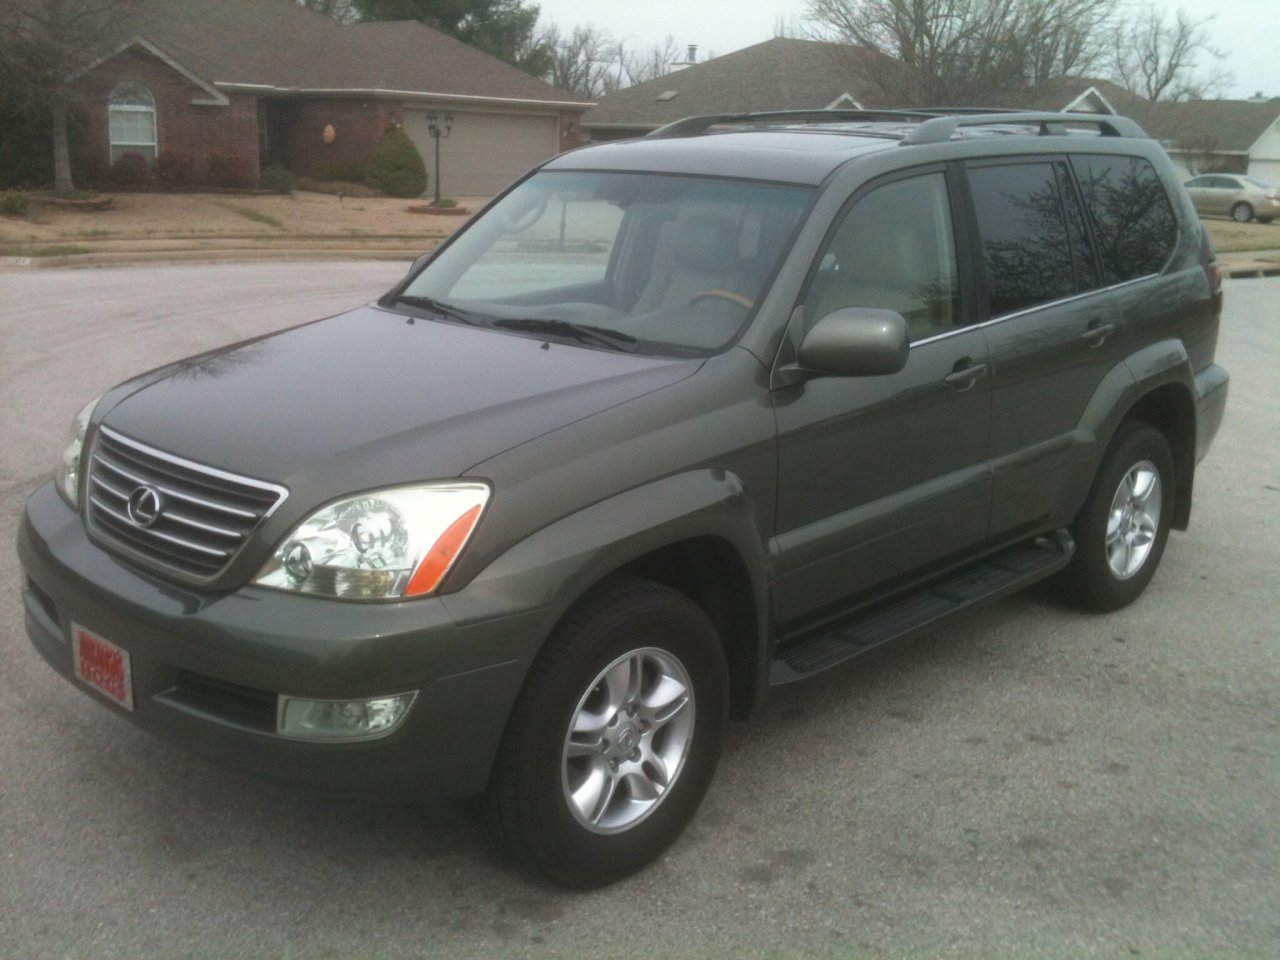 for sale 2006 lexus gx470 ih8mud forum. Black Bedroom Furniture Sets. Home Design Ideas